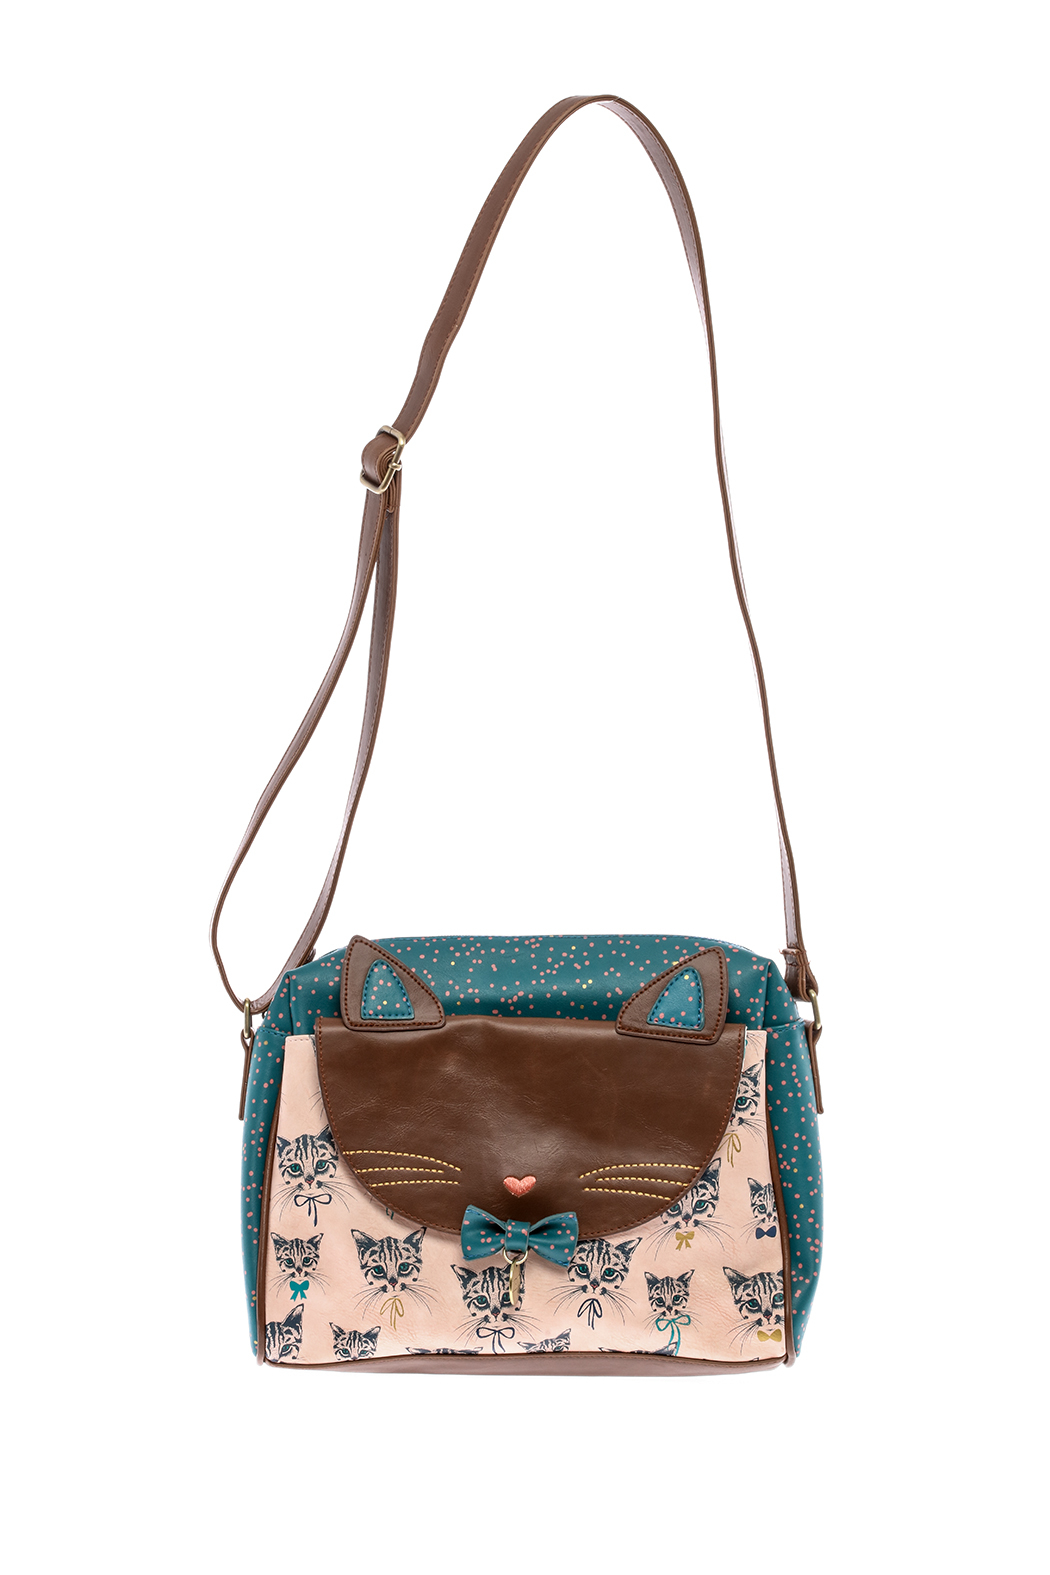 House of Disaster Meow Satchel Bag - Main Image